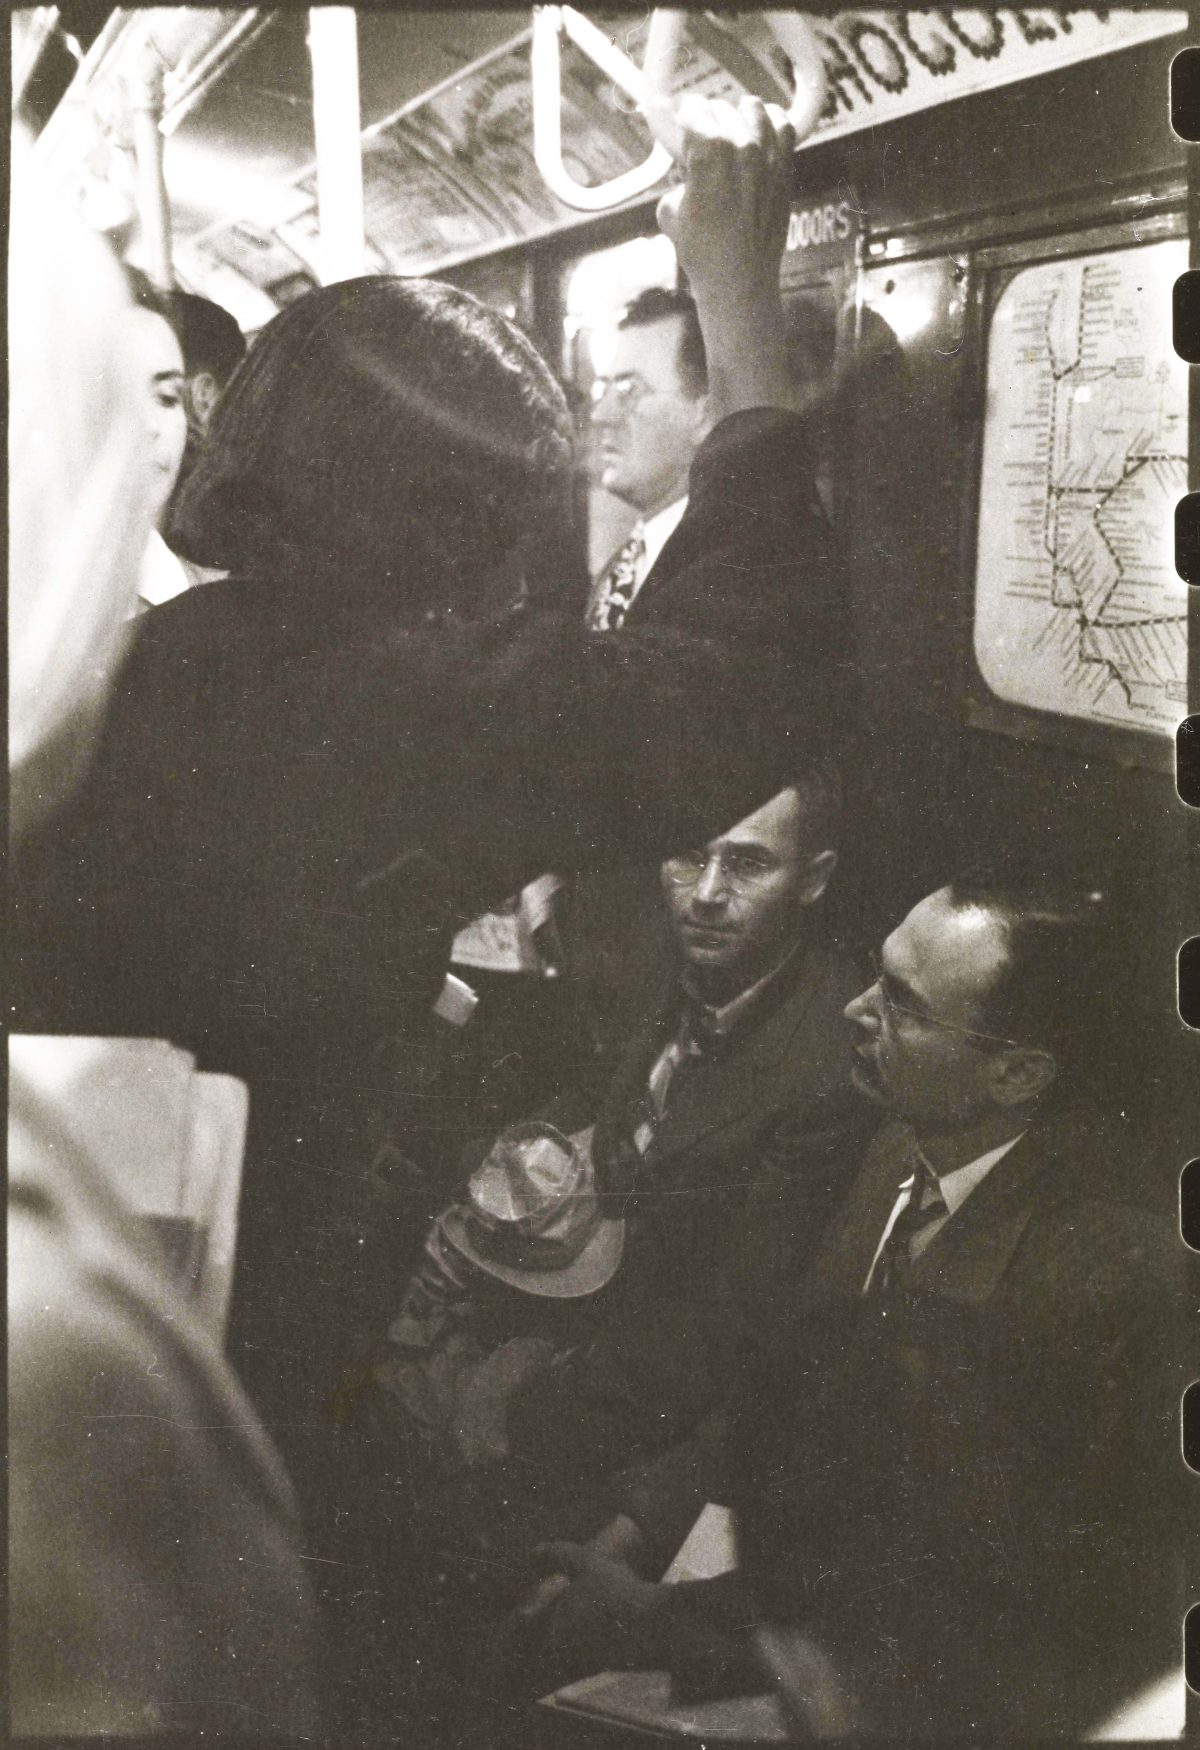 Staley Kubrick New York Subway 1949